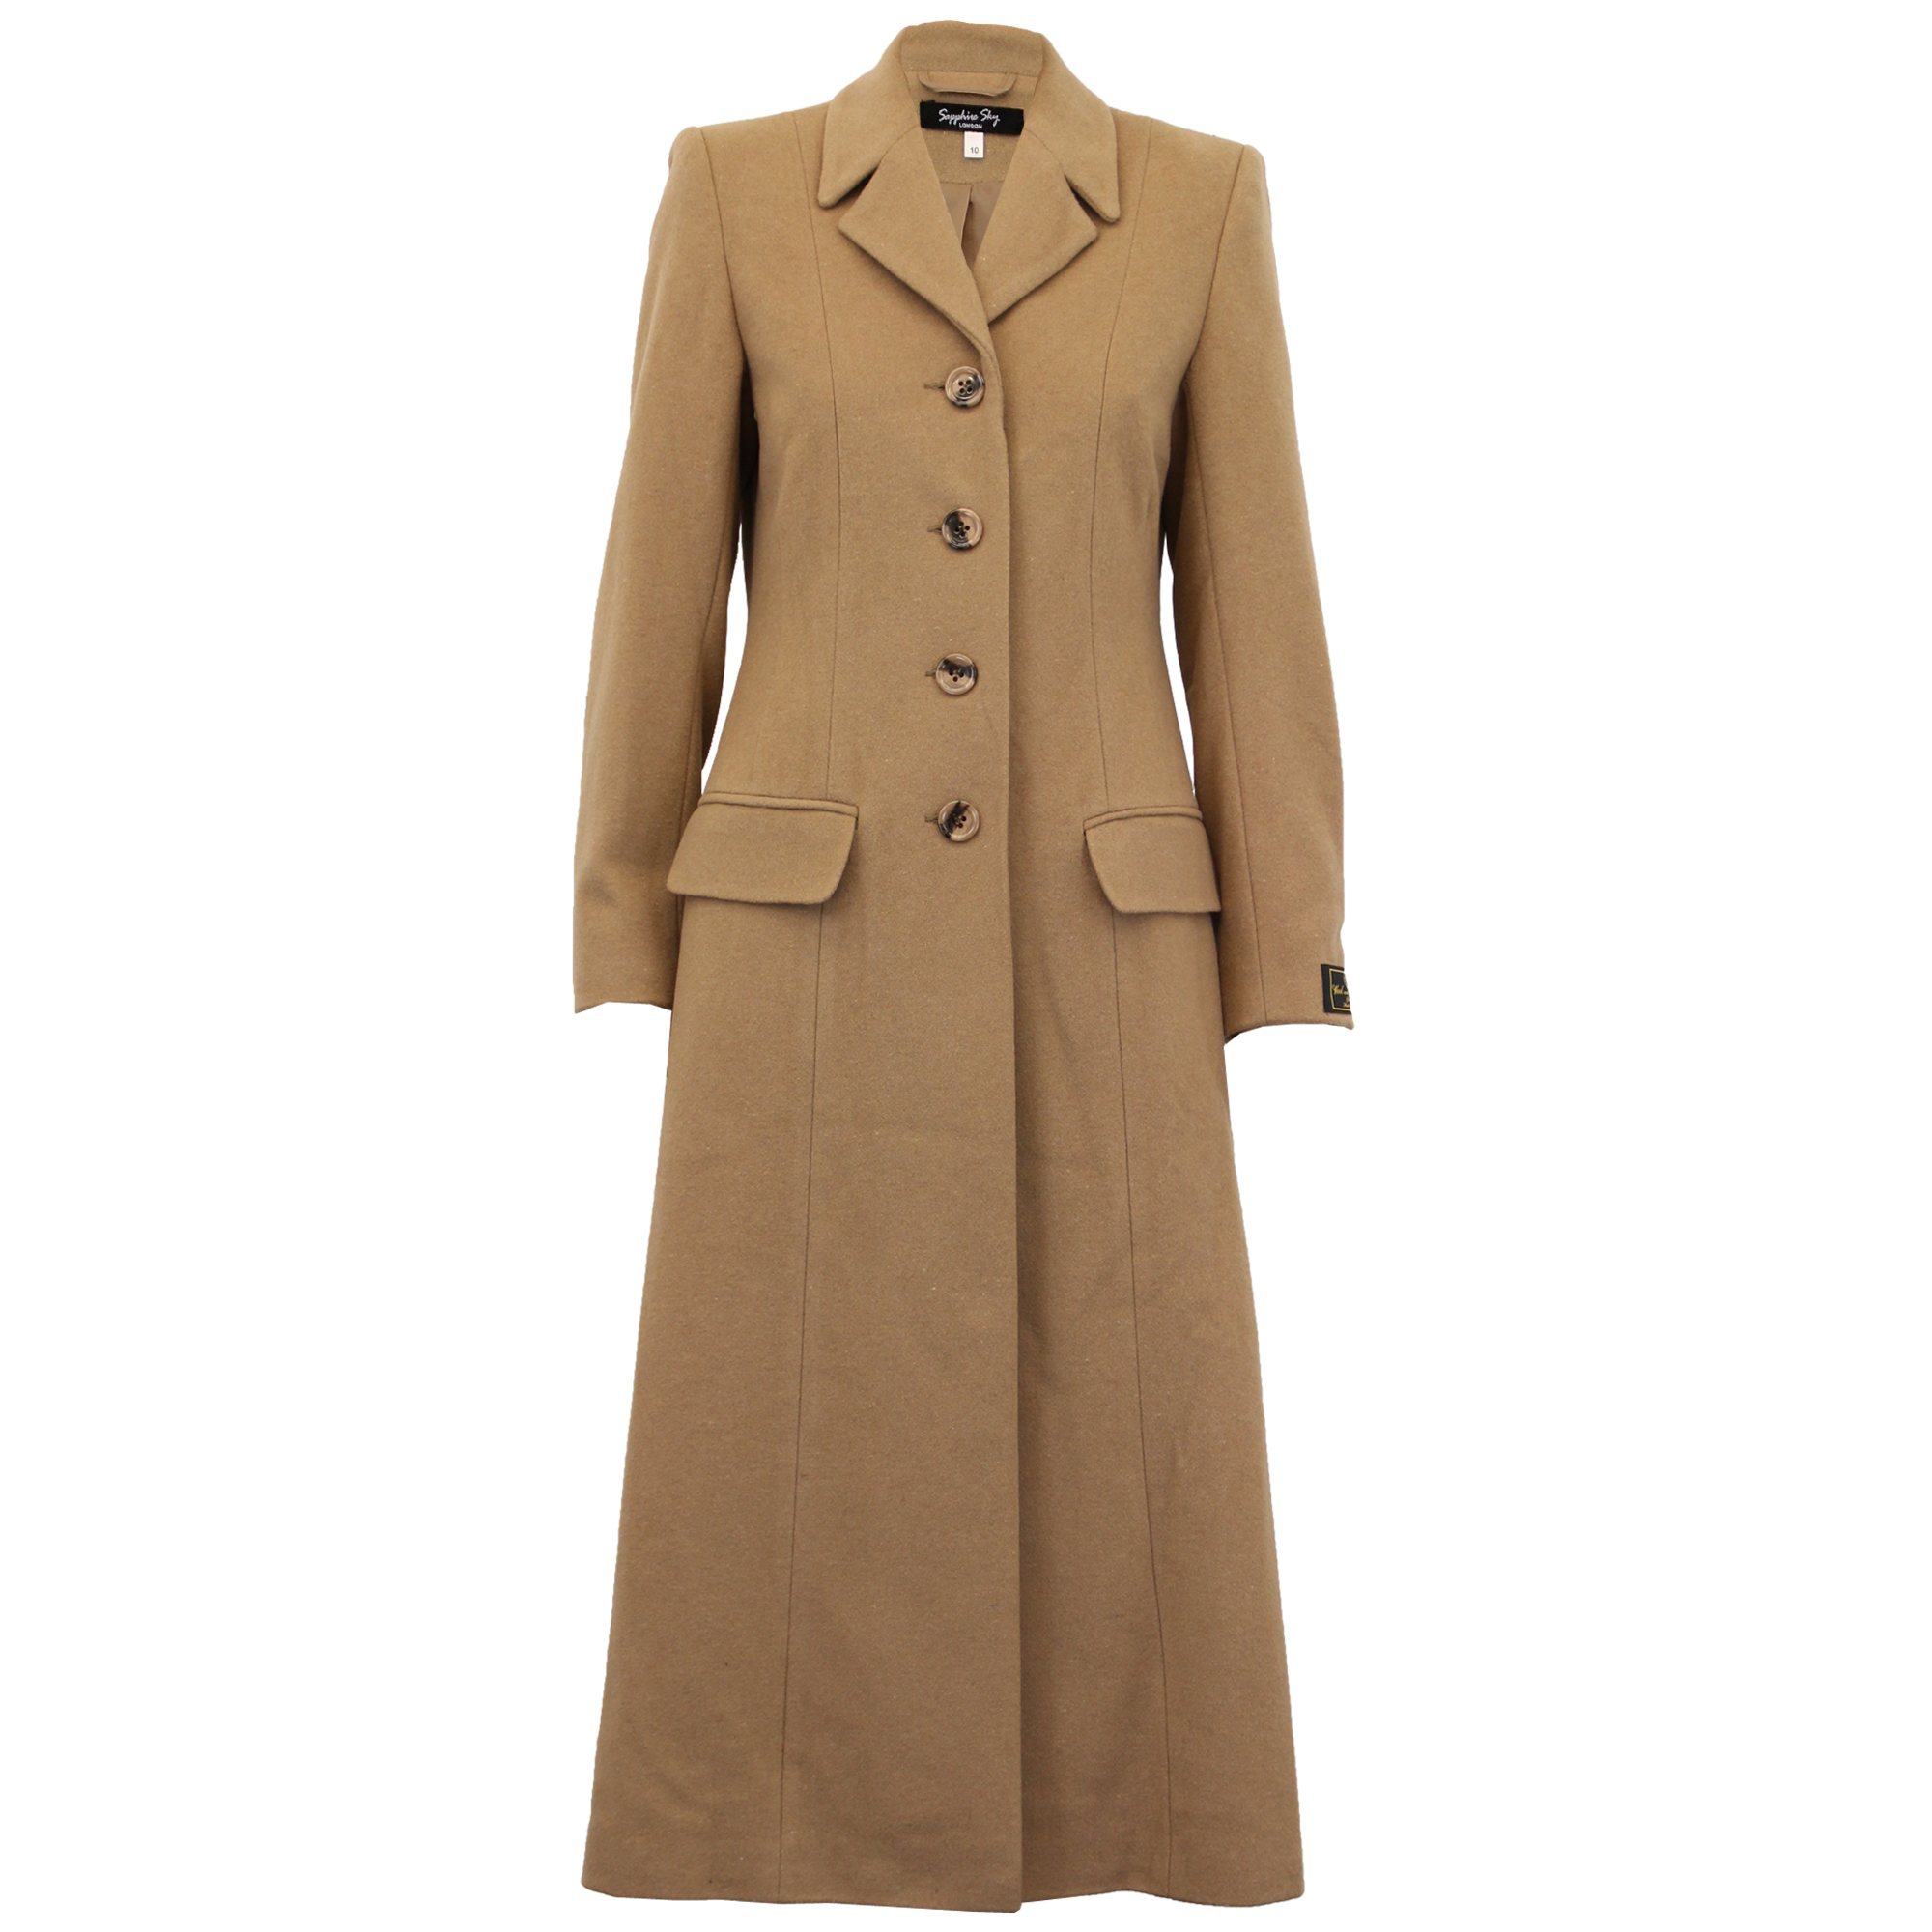 Women Coats - Buy Women Coats Online - Browse new arrival in Women Coats, Check latest price in India and shop at India's favourite online store - Find widest range of apparels at Best prices @ makeshop-mdrcky9h.ga